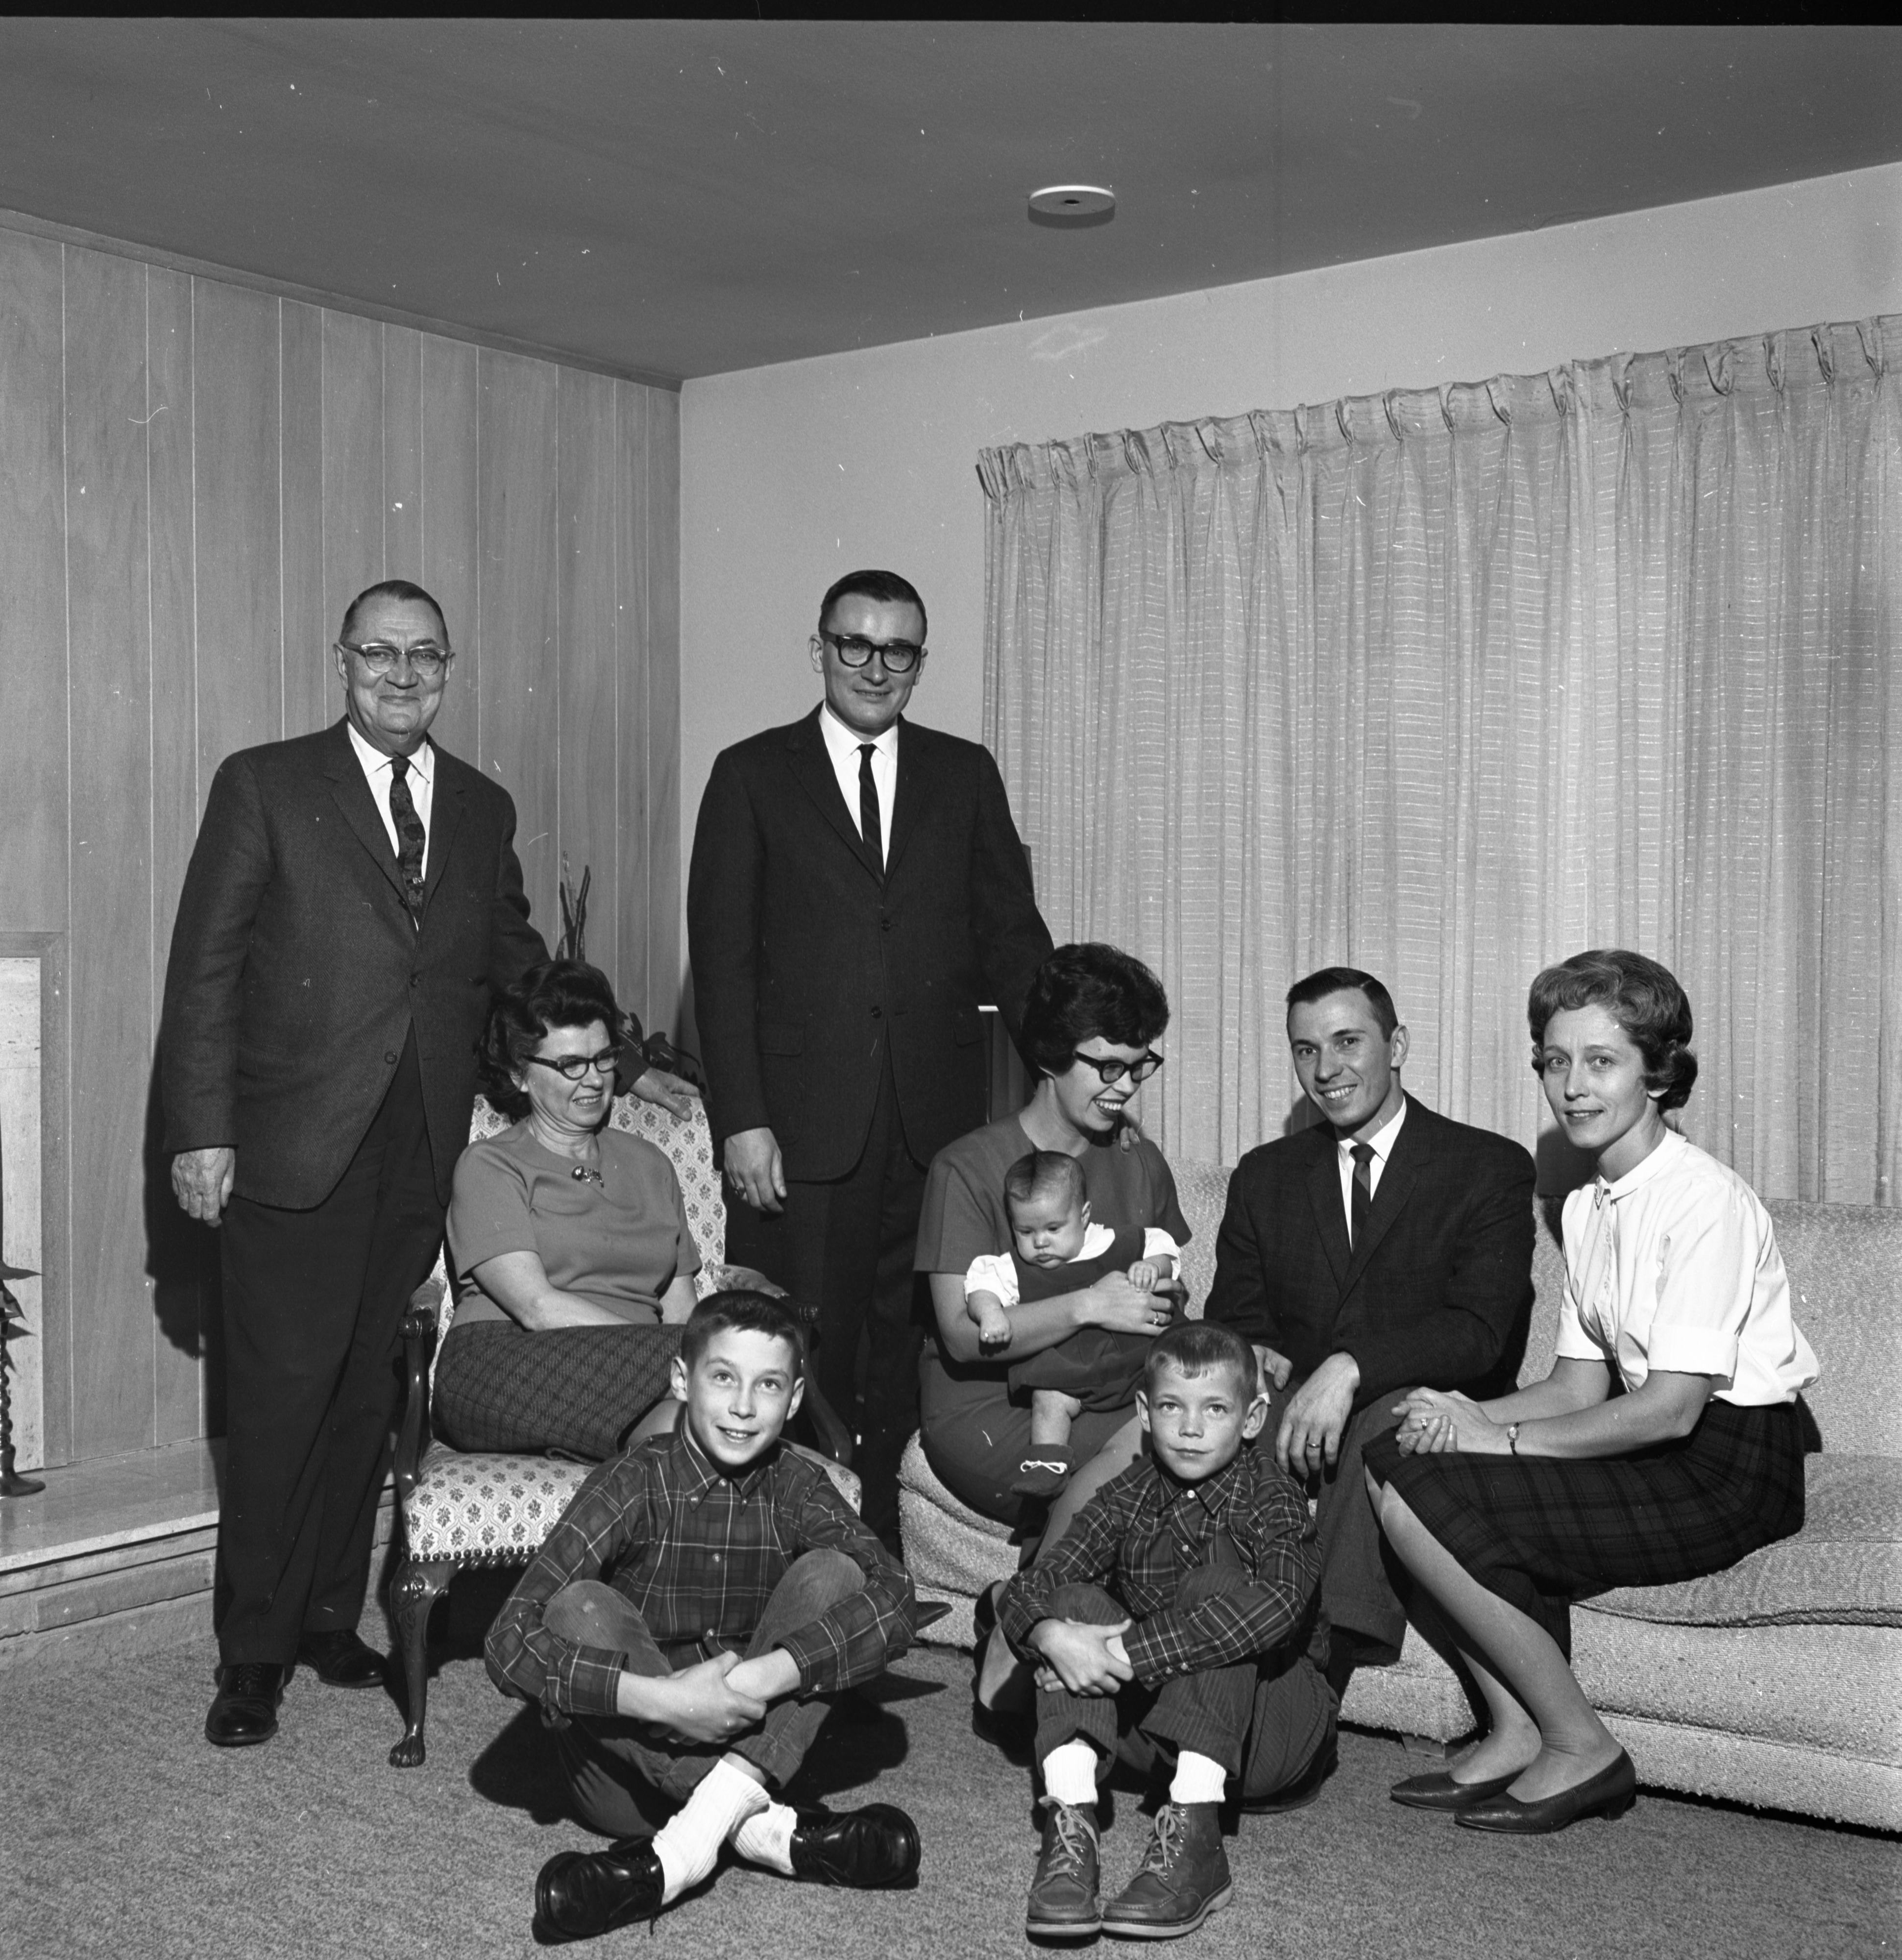 The Cecil O. Creal Family, December 1964 image